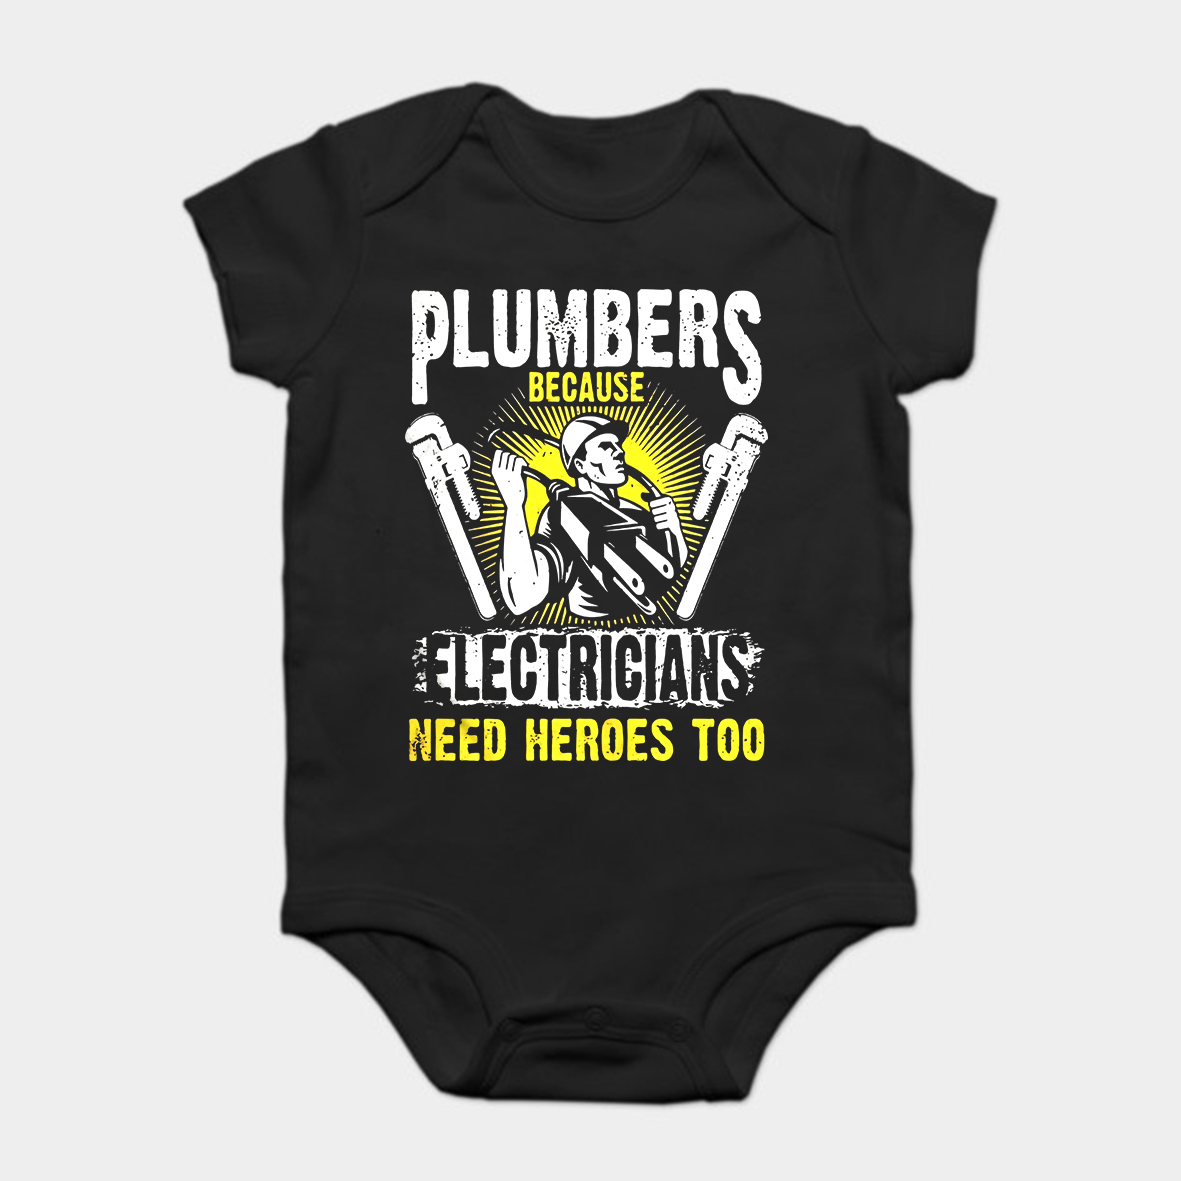 Baby Onesie Baby Bodysuits Kid T Shirt Funny Novelty Plumbers Because Electricians Need Heroes Too Cool Easy To Lubricate